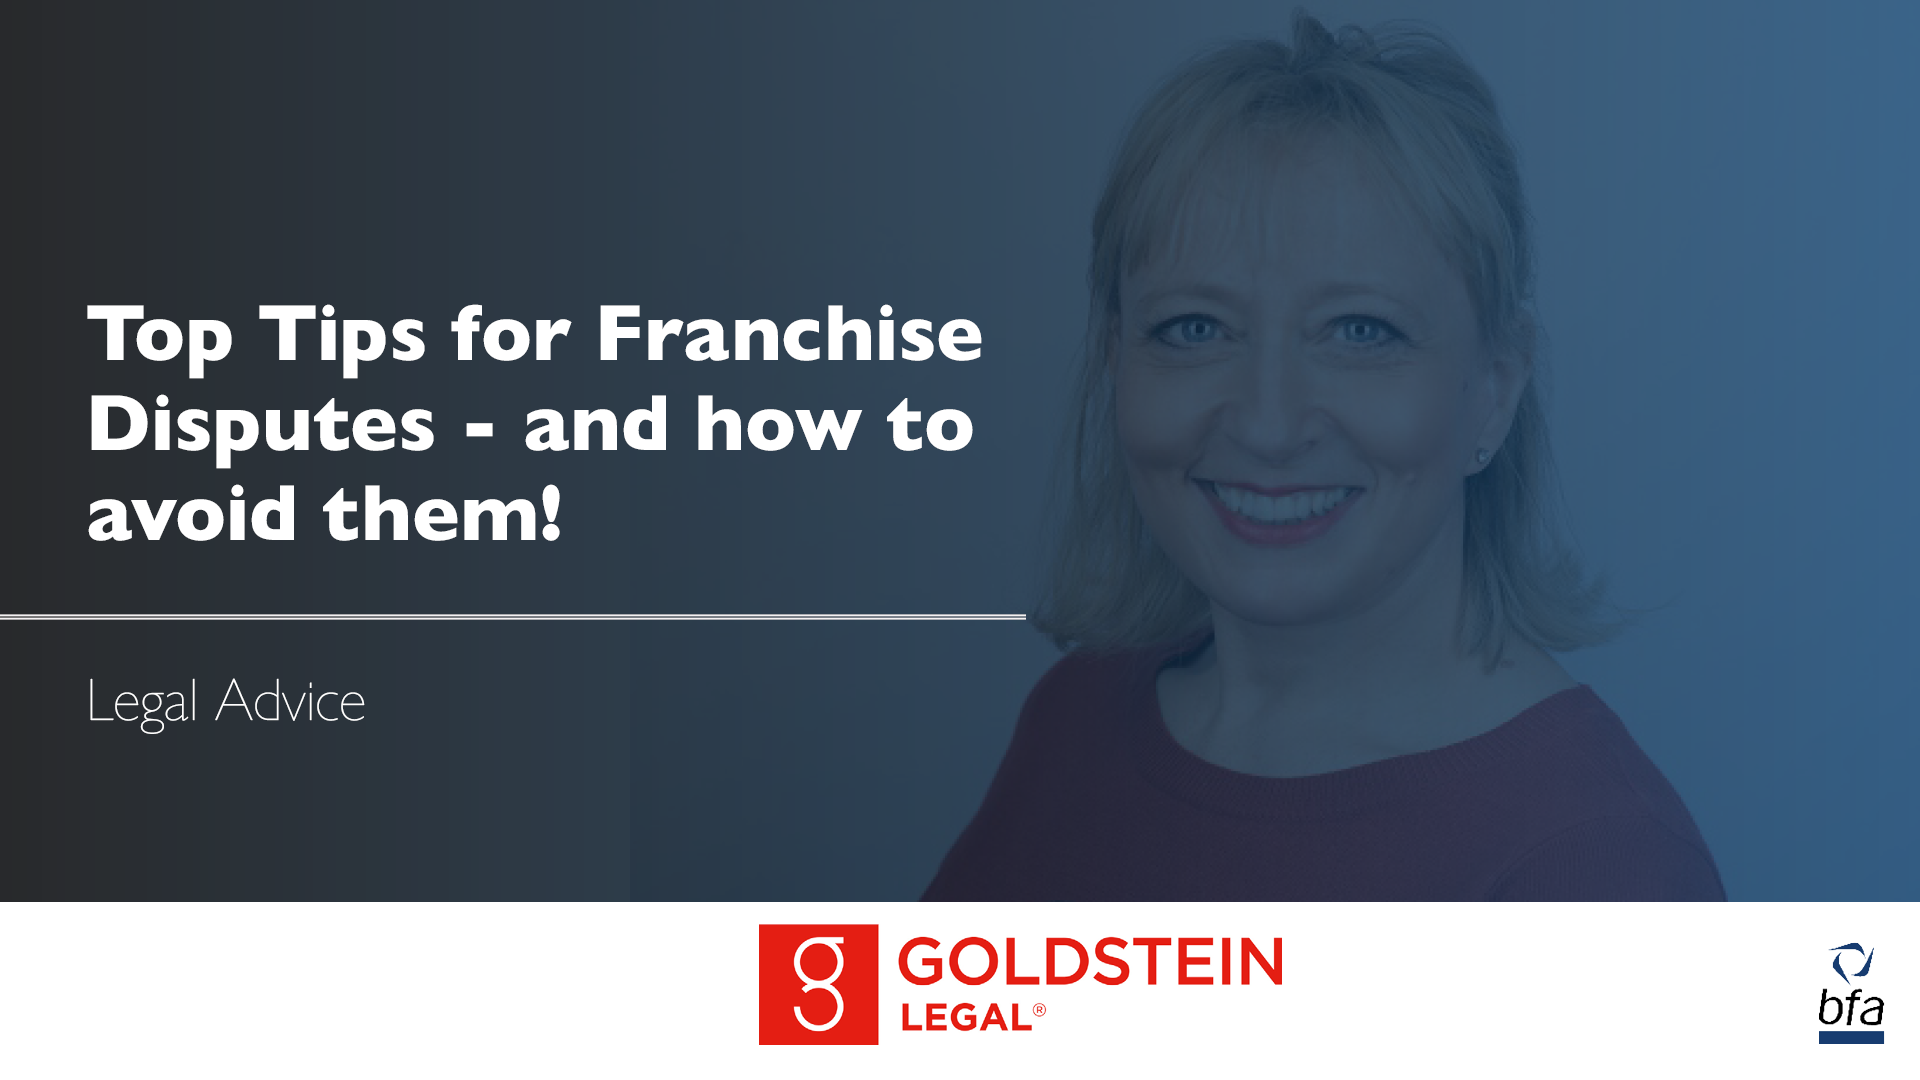 Top Tips for Franchise Disputes – and how to avoid them!